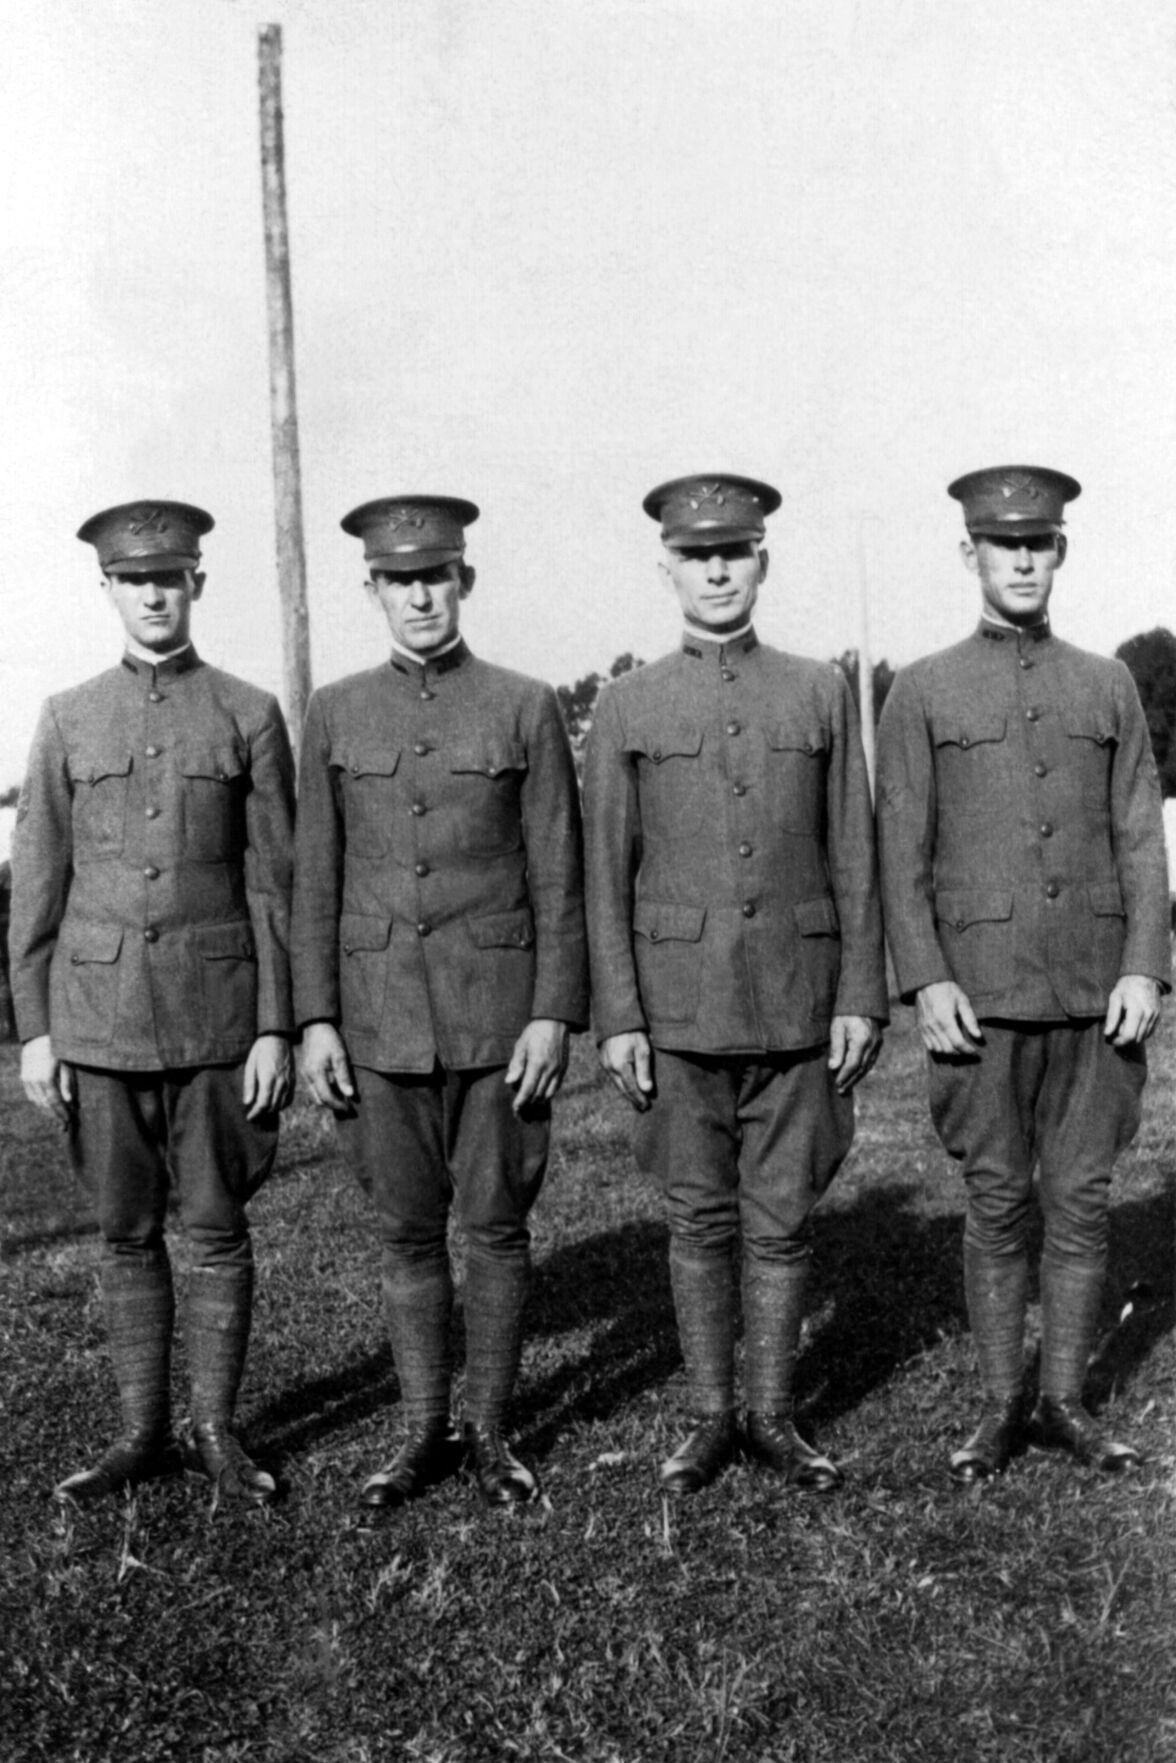 Portrait of four military men in uniform standing outdoors in a line; circa WW1.